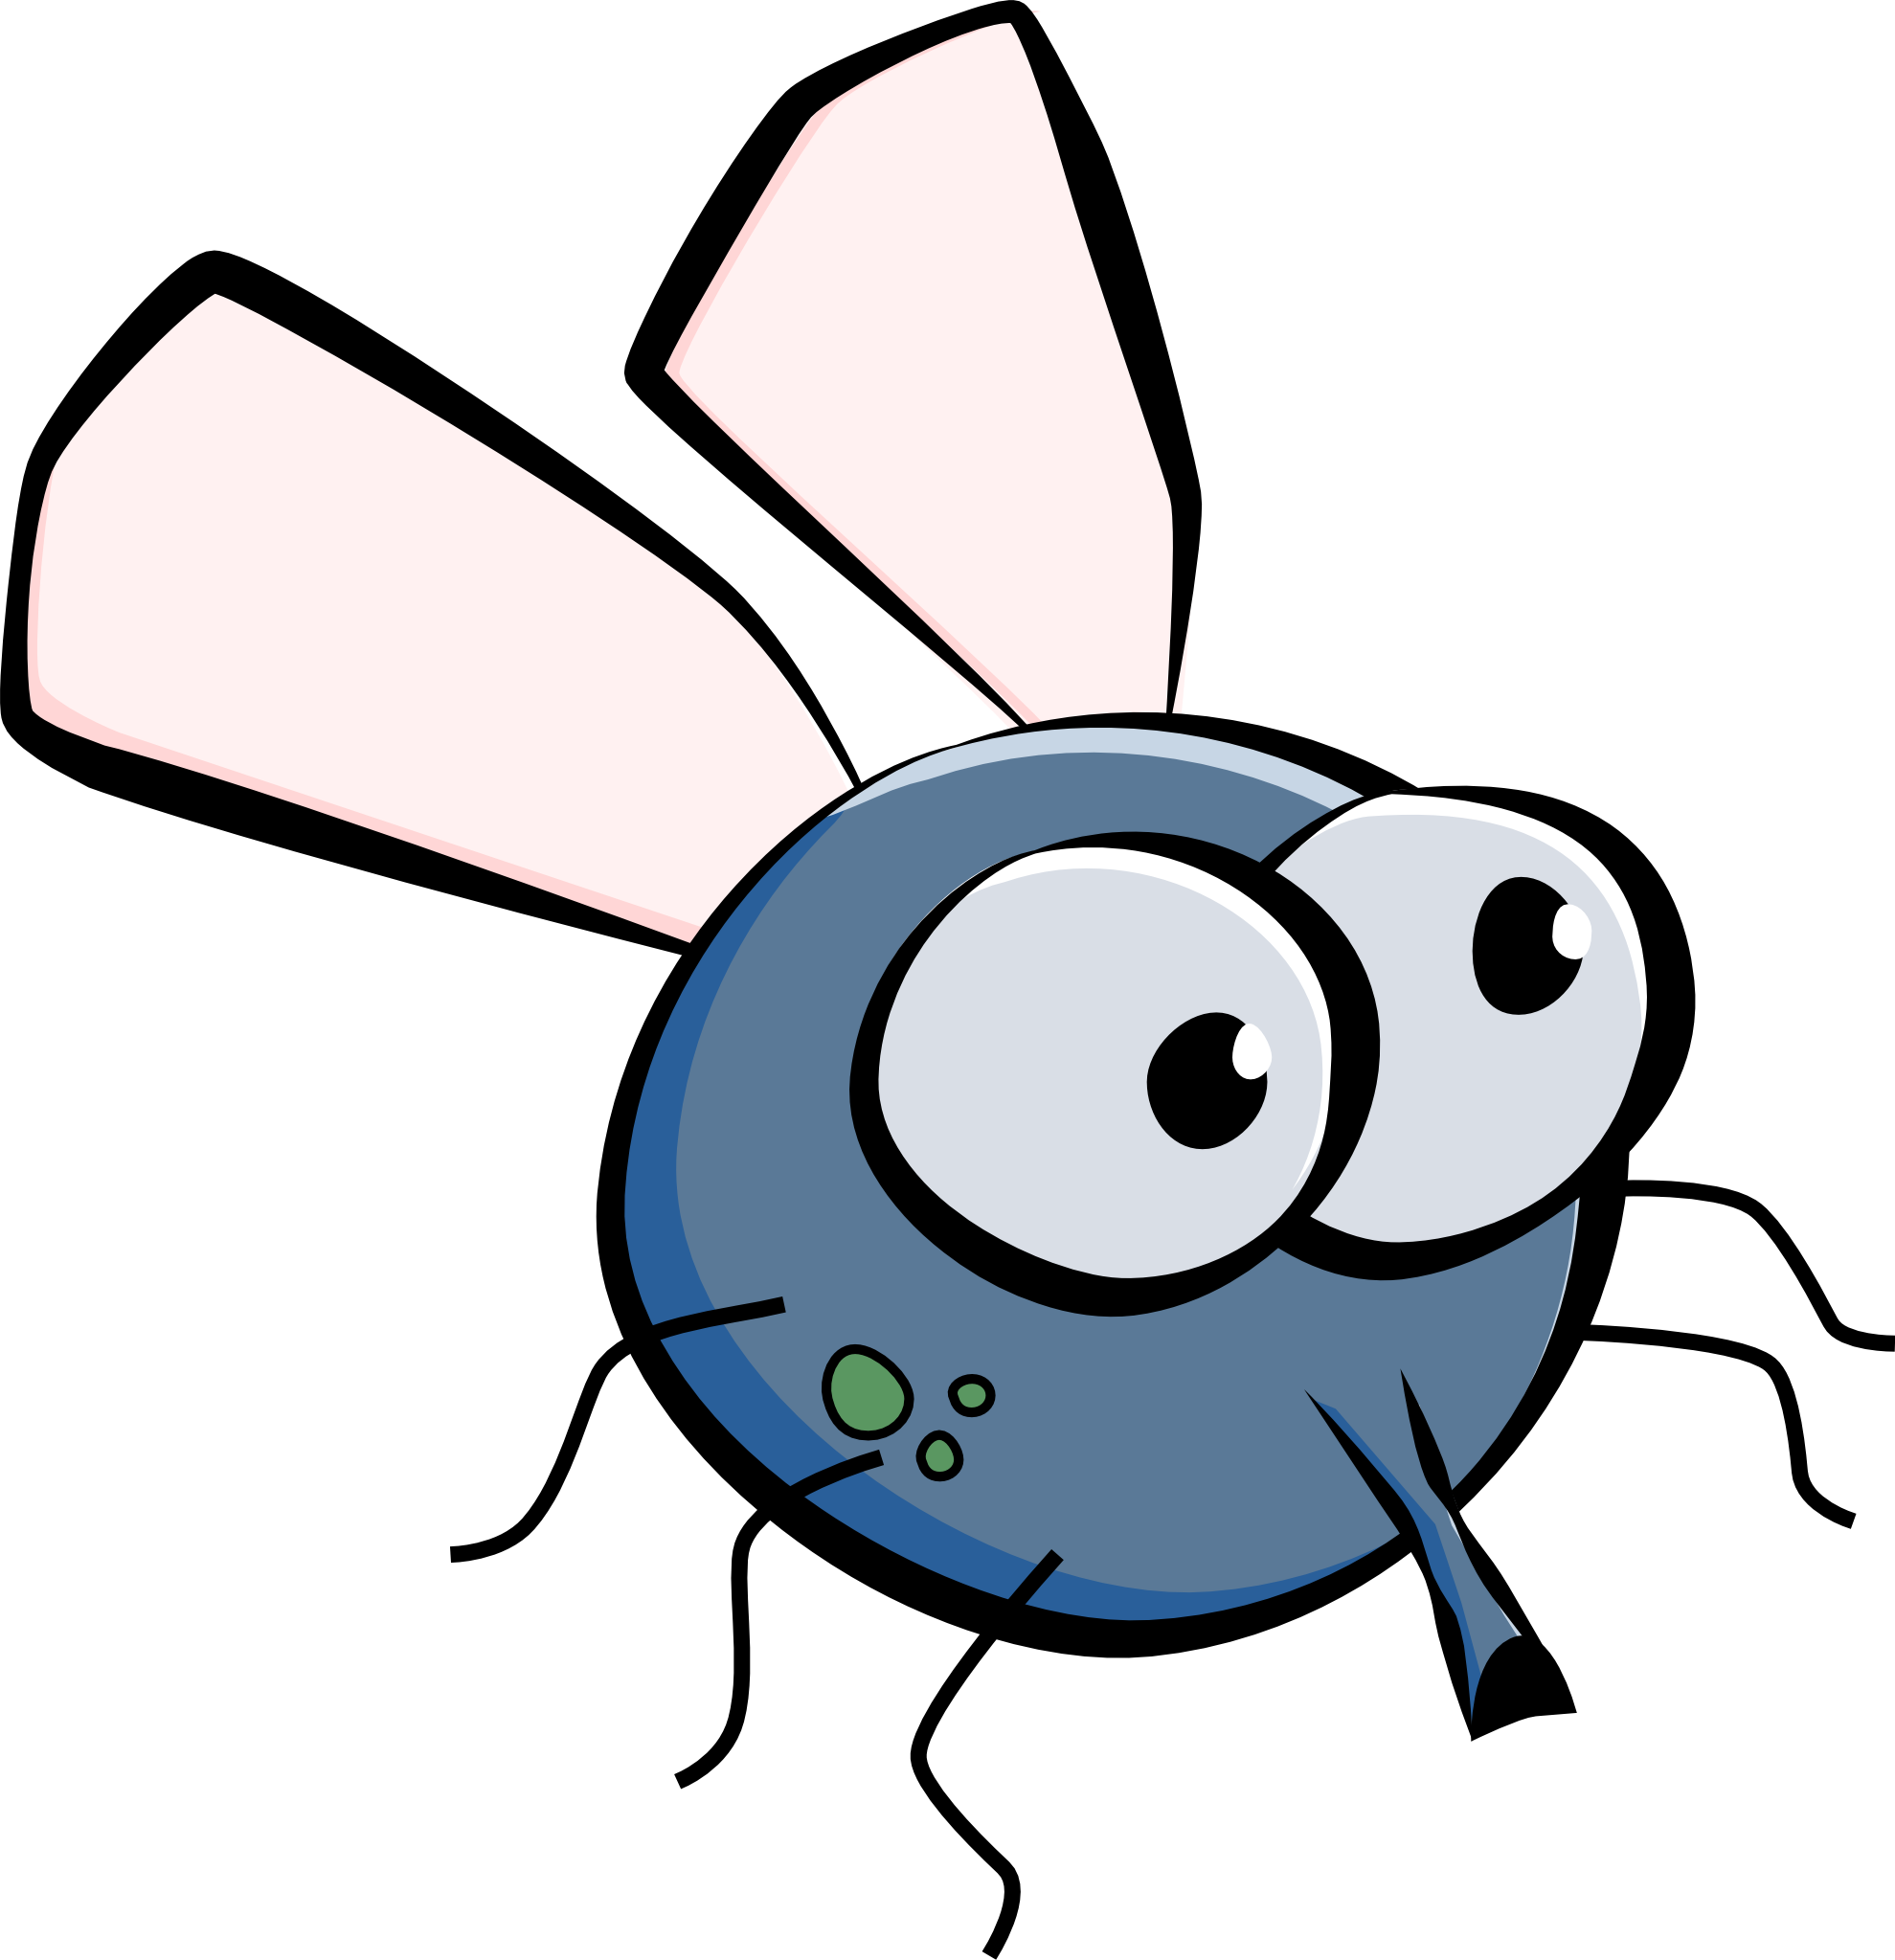 Free Cartoon Pictures Of Flies, Download Free Clip Art, Free.